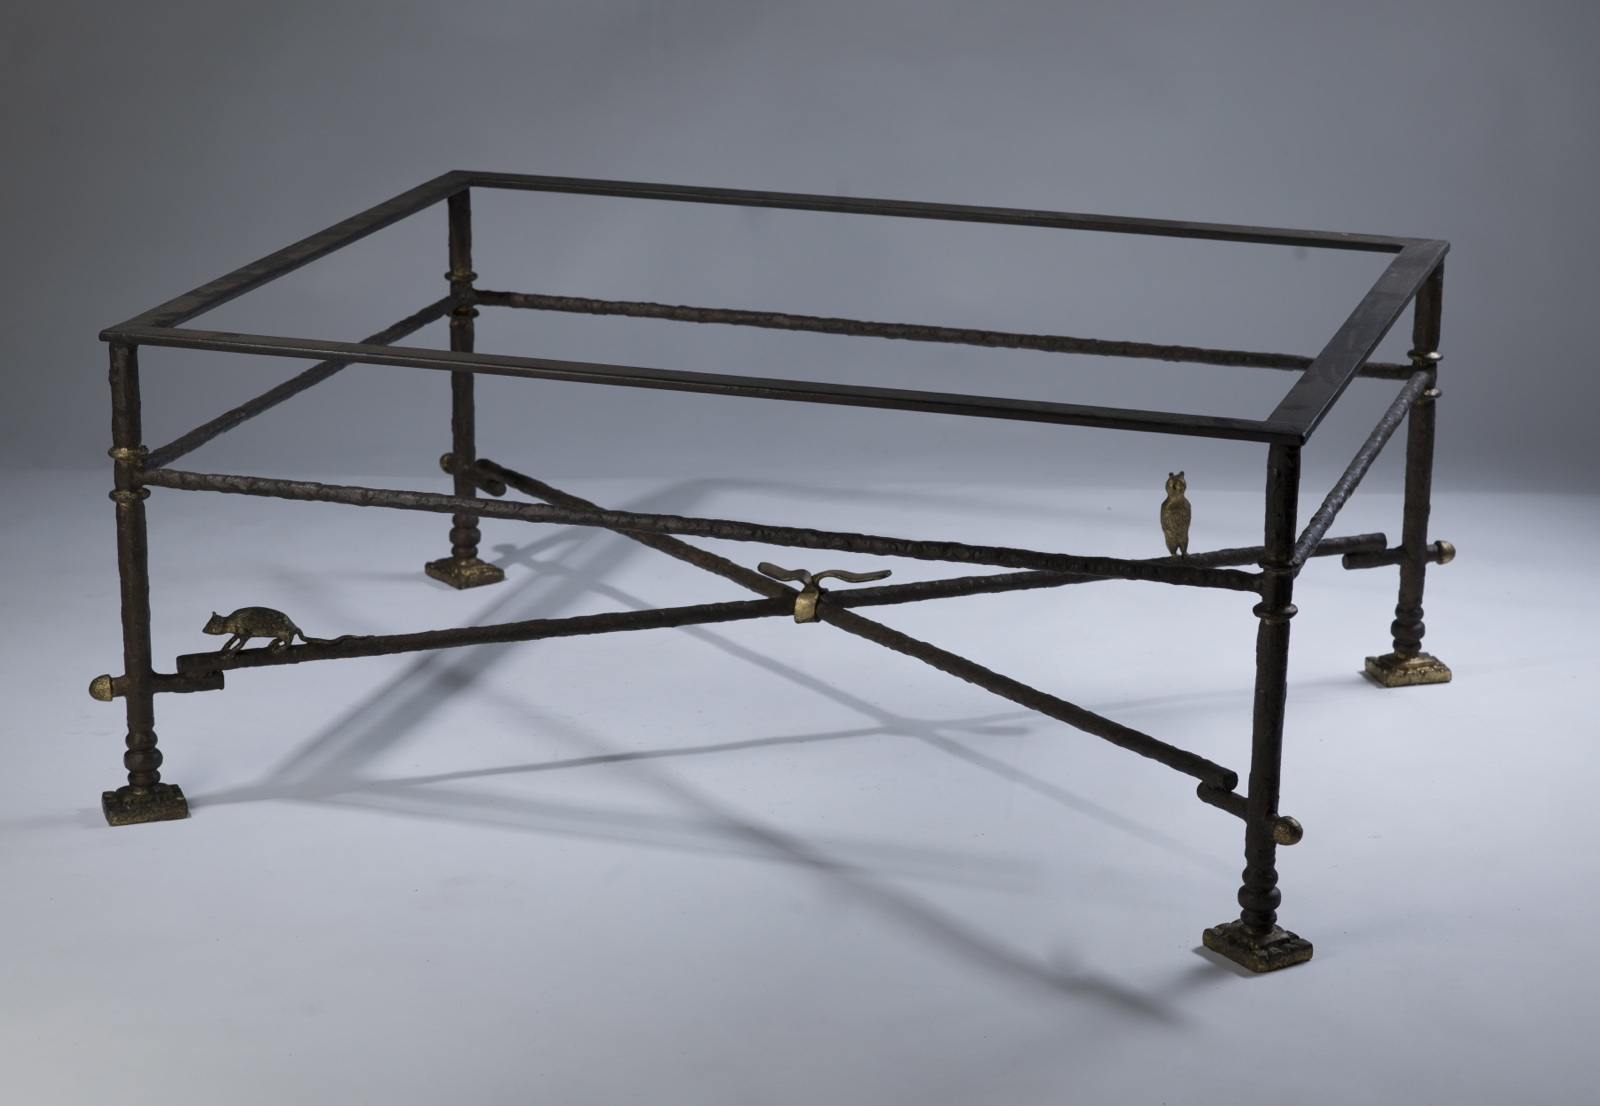 Wrought Iron Coffee Table In Brown Bronze Distressed Gold Highlights With Glass Top T3151